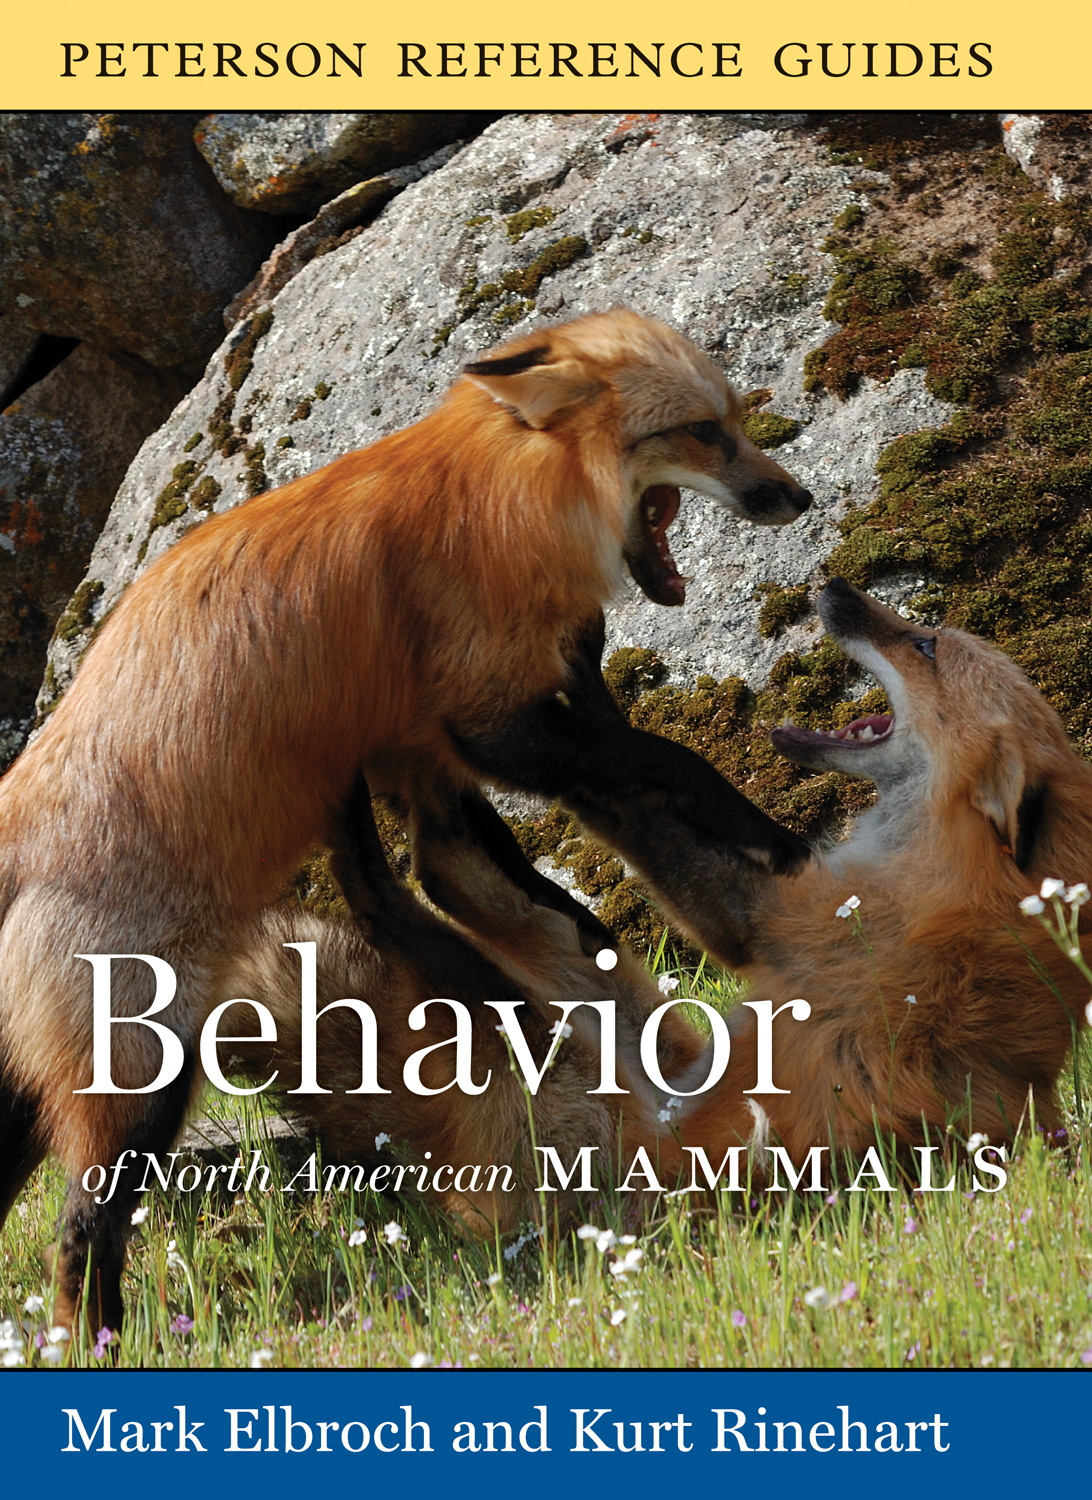 Peterson Reference Guide to the Behavior of North American Mammals-9780618883455